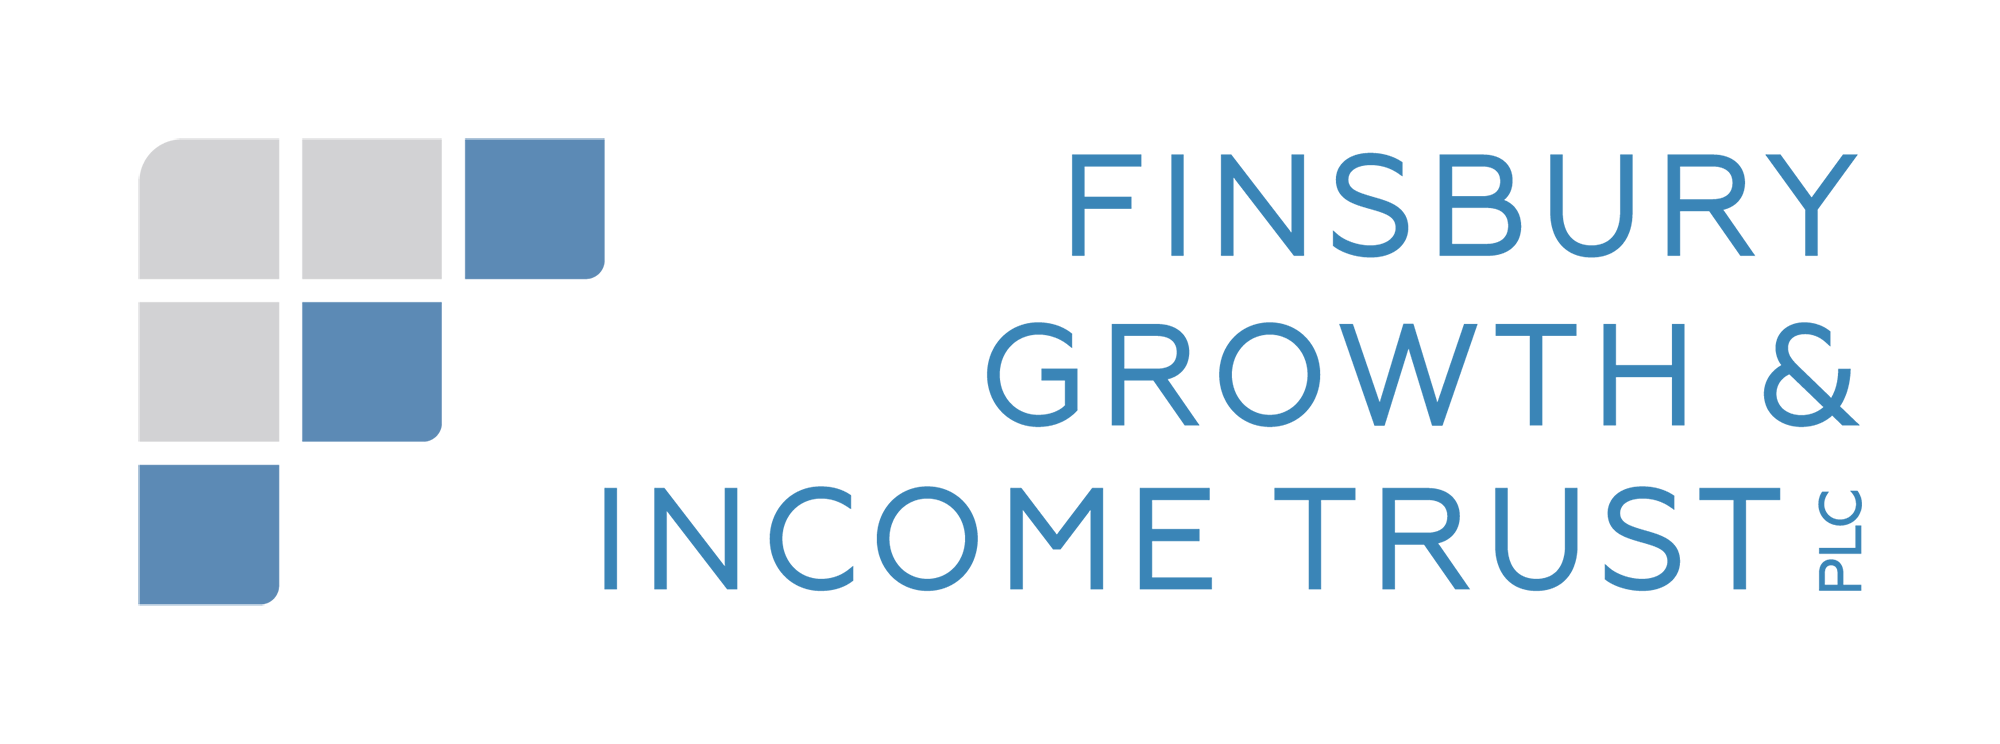 FINSBURY GROWTH & INCOME TRUST PLC Logo